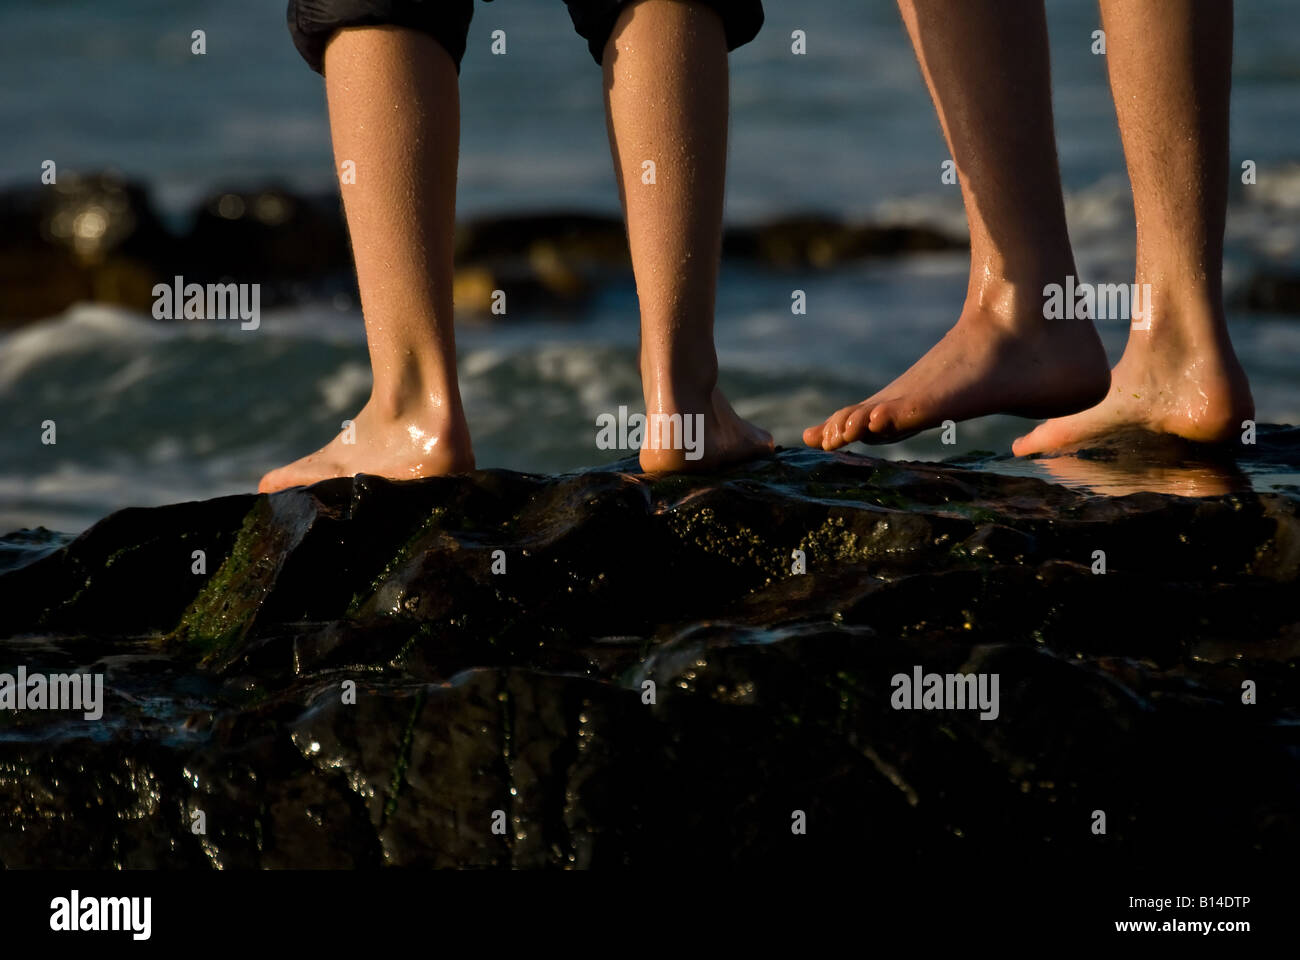 People standing on wet rocks at Sennen in Cornwall. - Stock Image